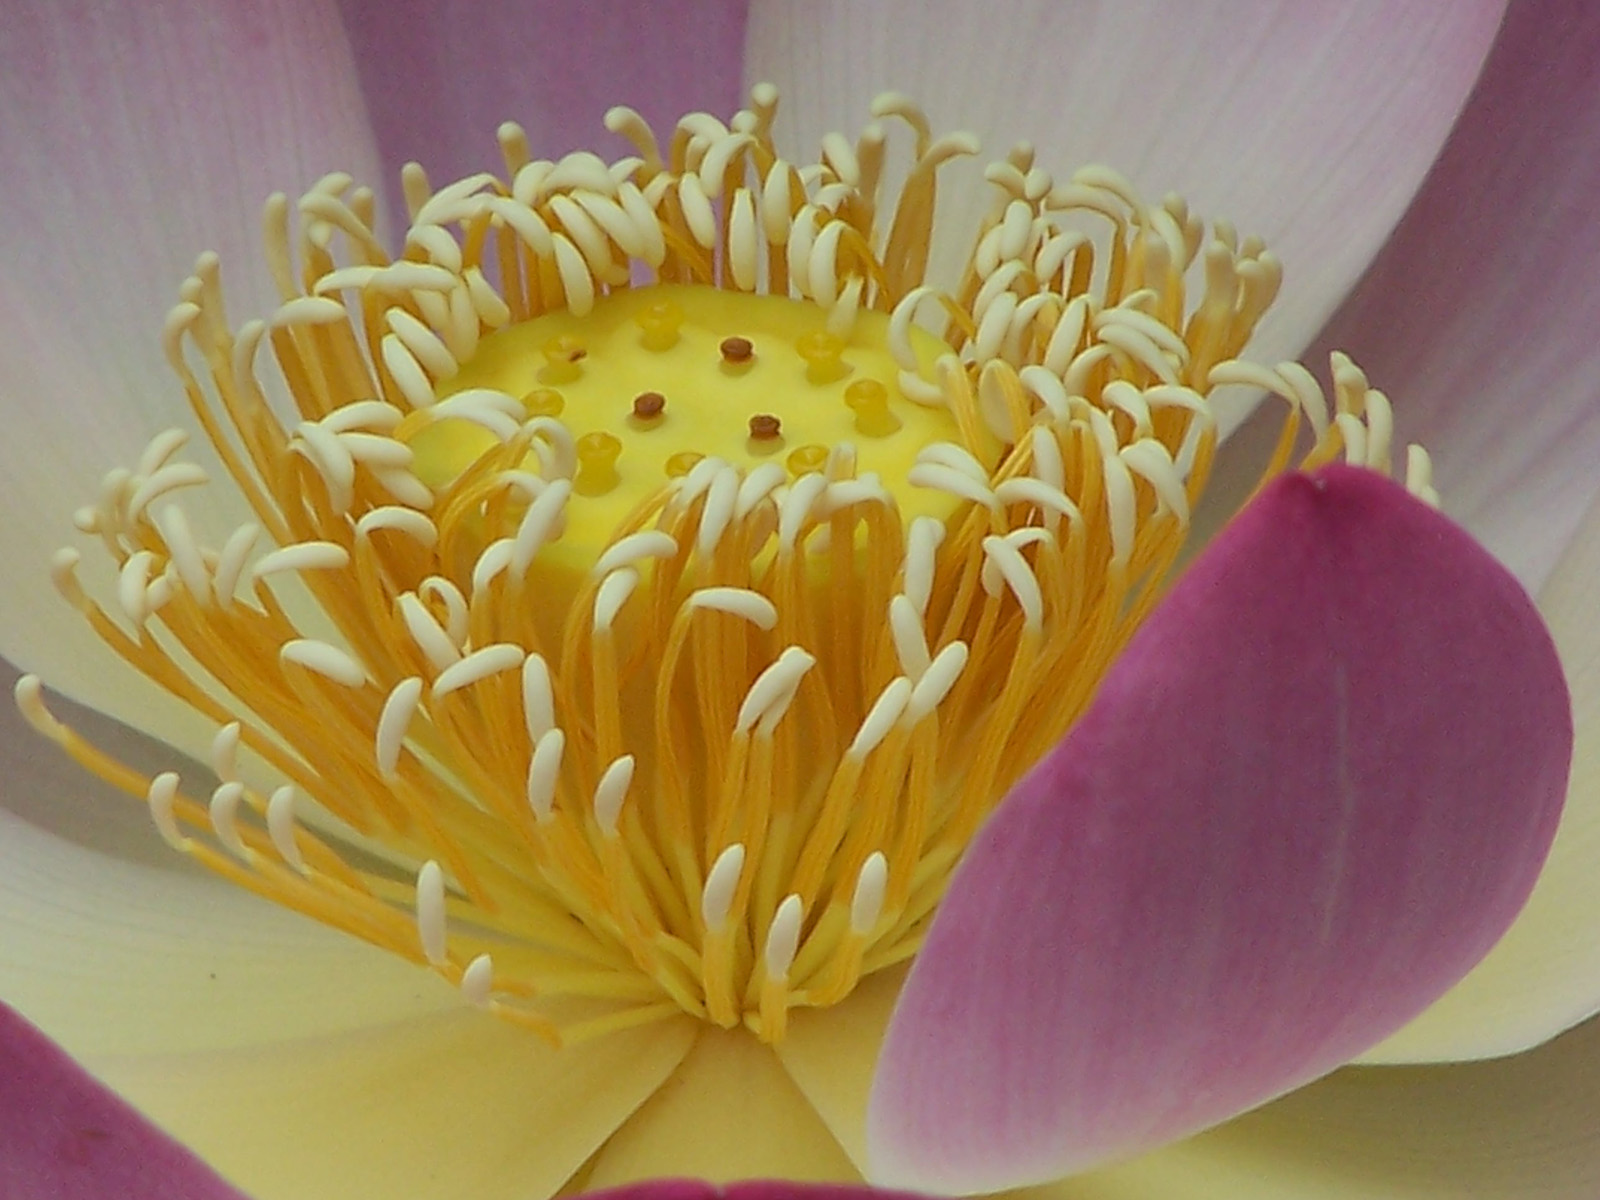 The flower of <i>Nelumbo nucifera</i>